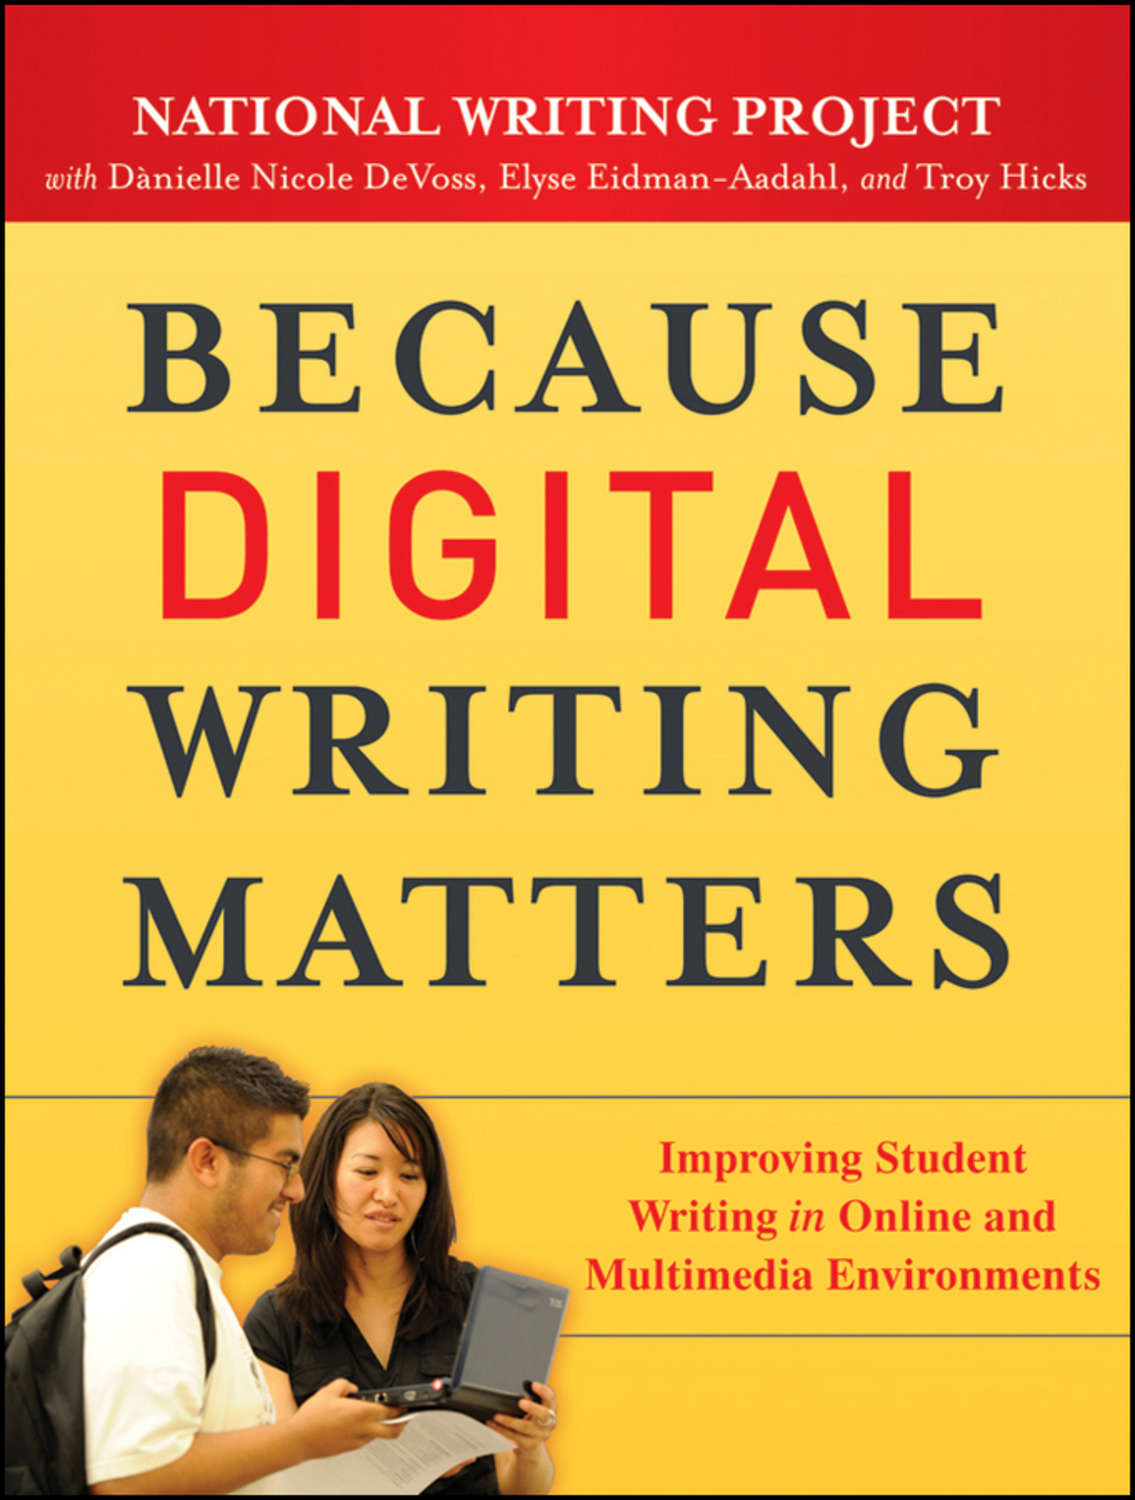 digital writing We use the term digital writing here rather than computers and writing, online writing, or other combinations of terms in part because we anchor writing practices to digital spaces digital writing is the art and practice of preparing documents primarily by computer and often for online delivery.